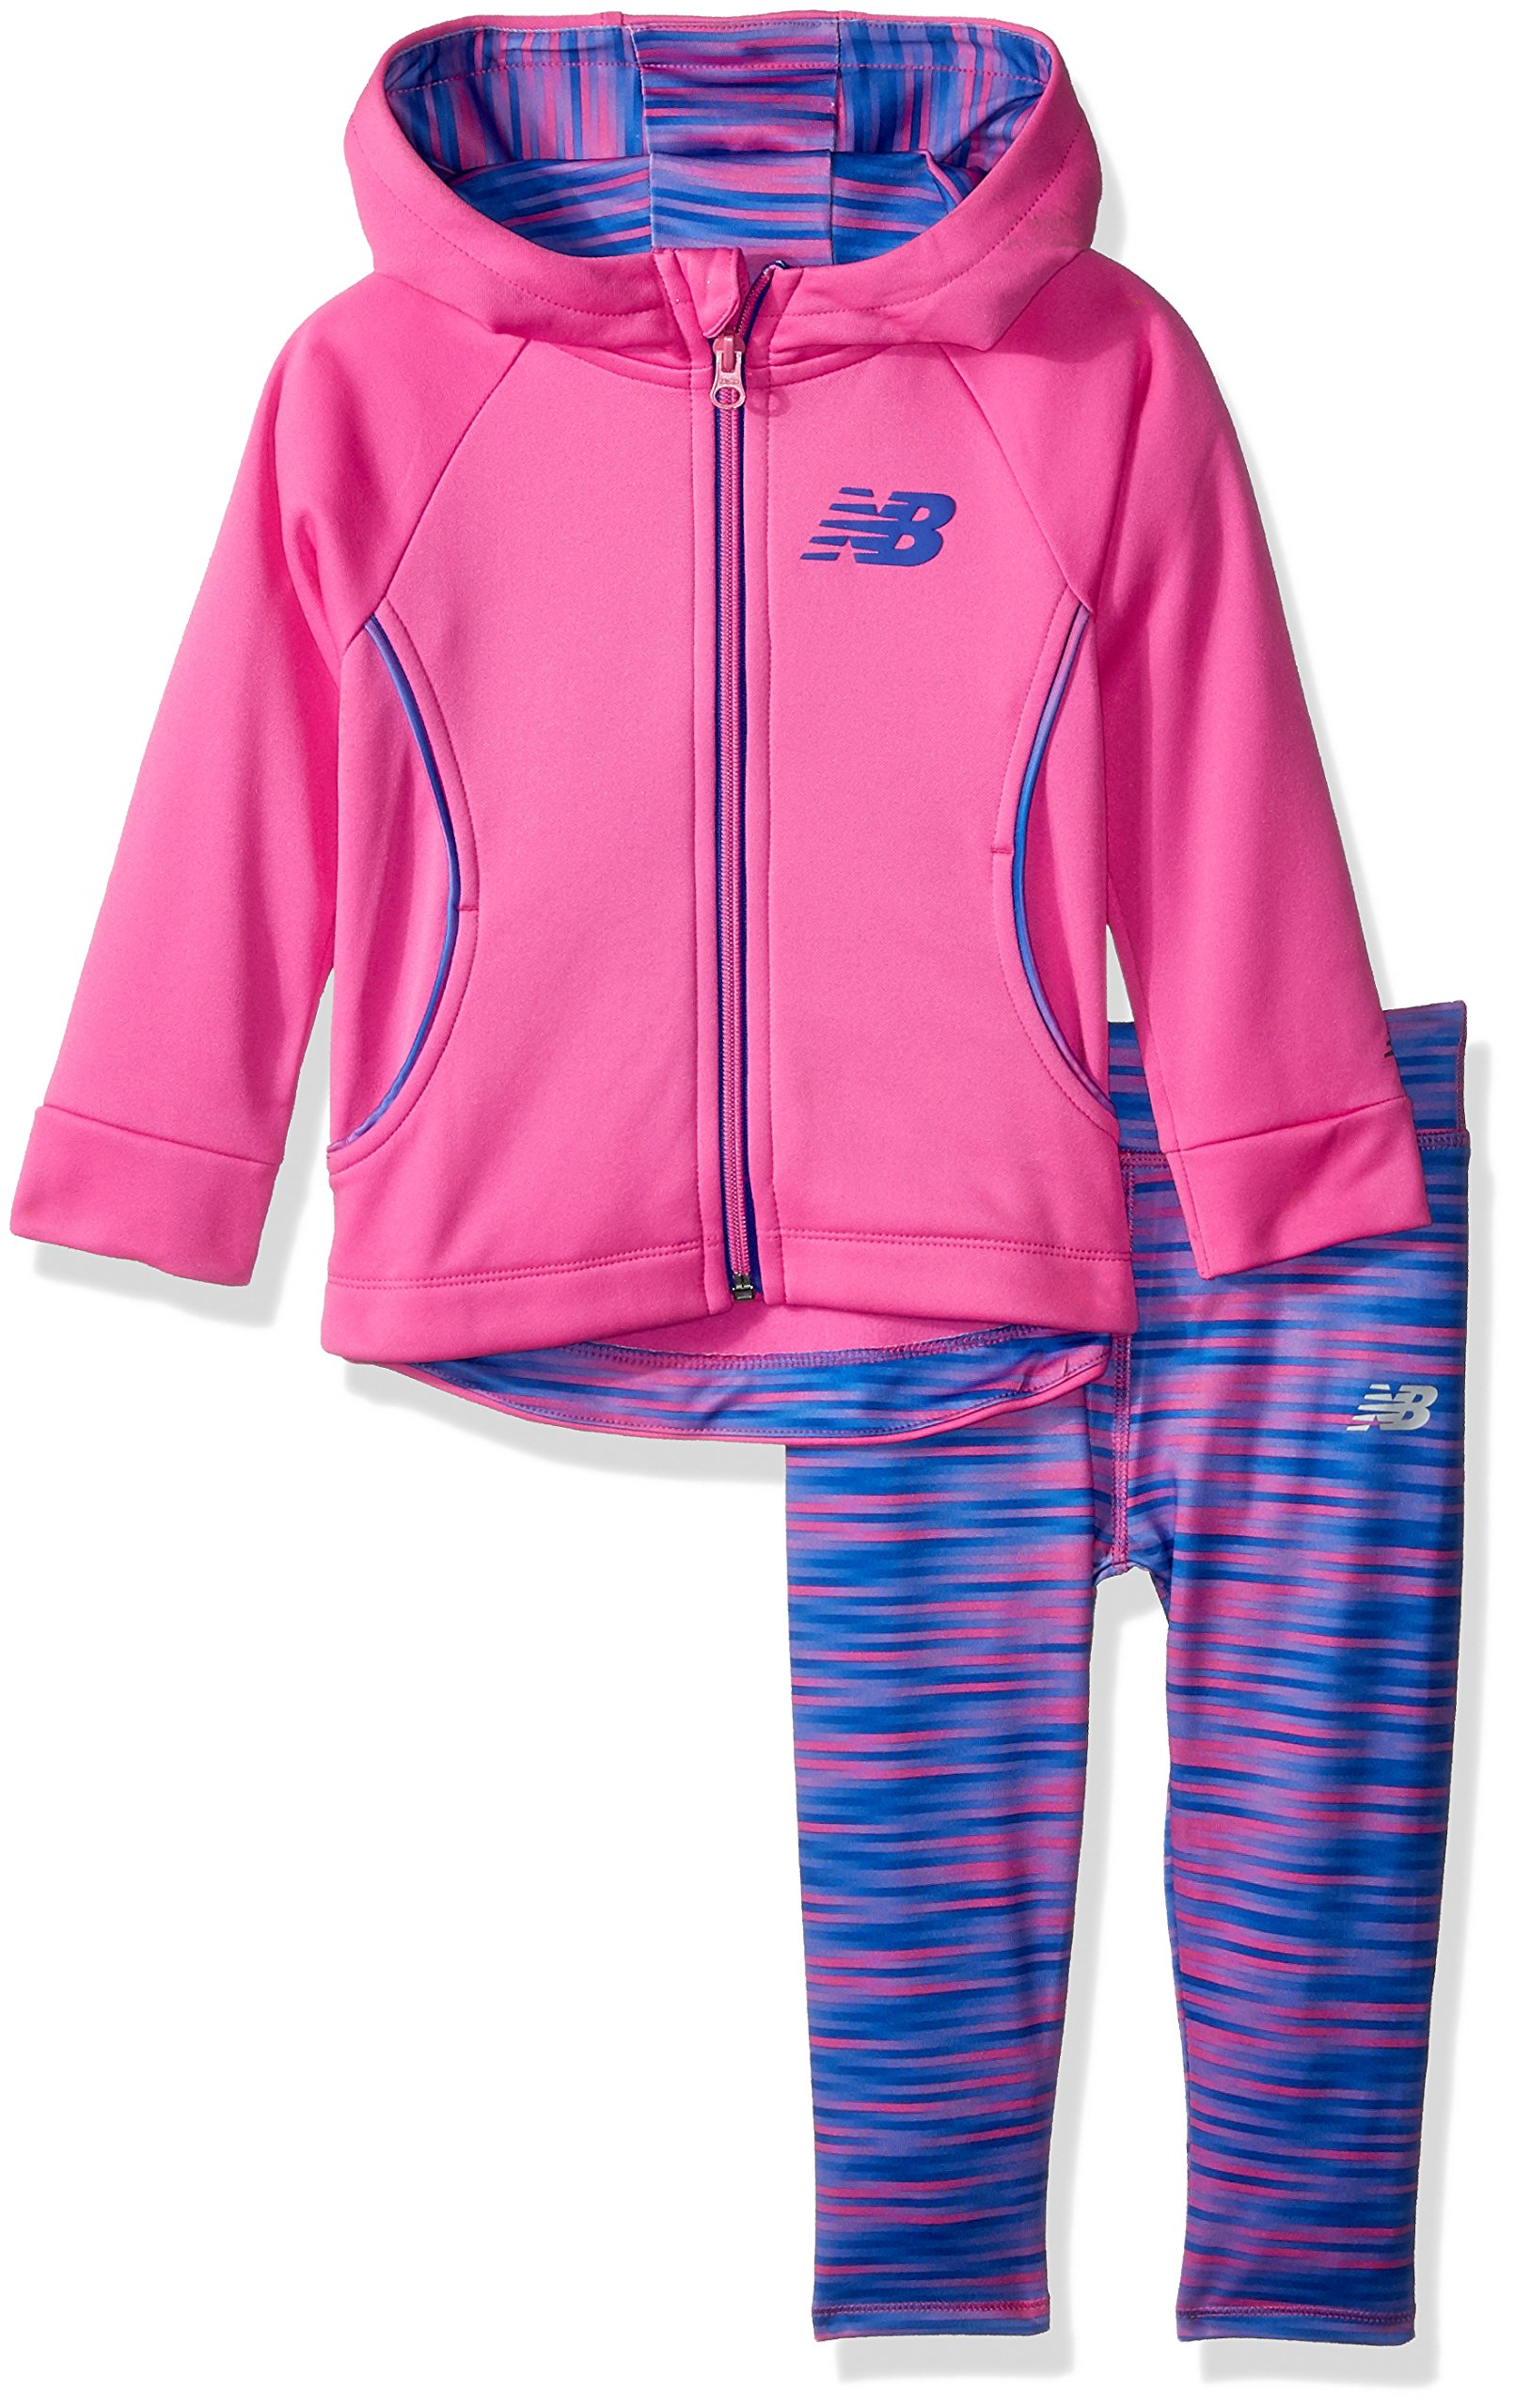 New Balance Kids Toddler Girls' Hooded Jacket and Tight Set, Fusion/Gradient Blur, 2T